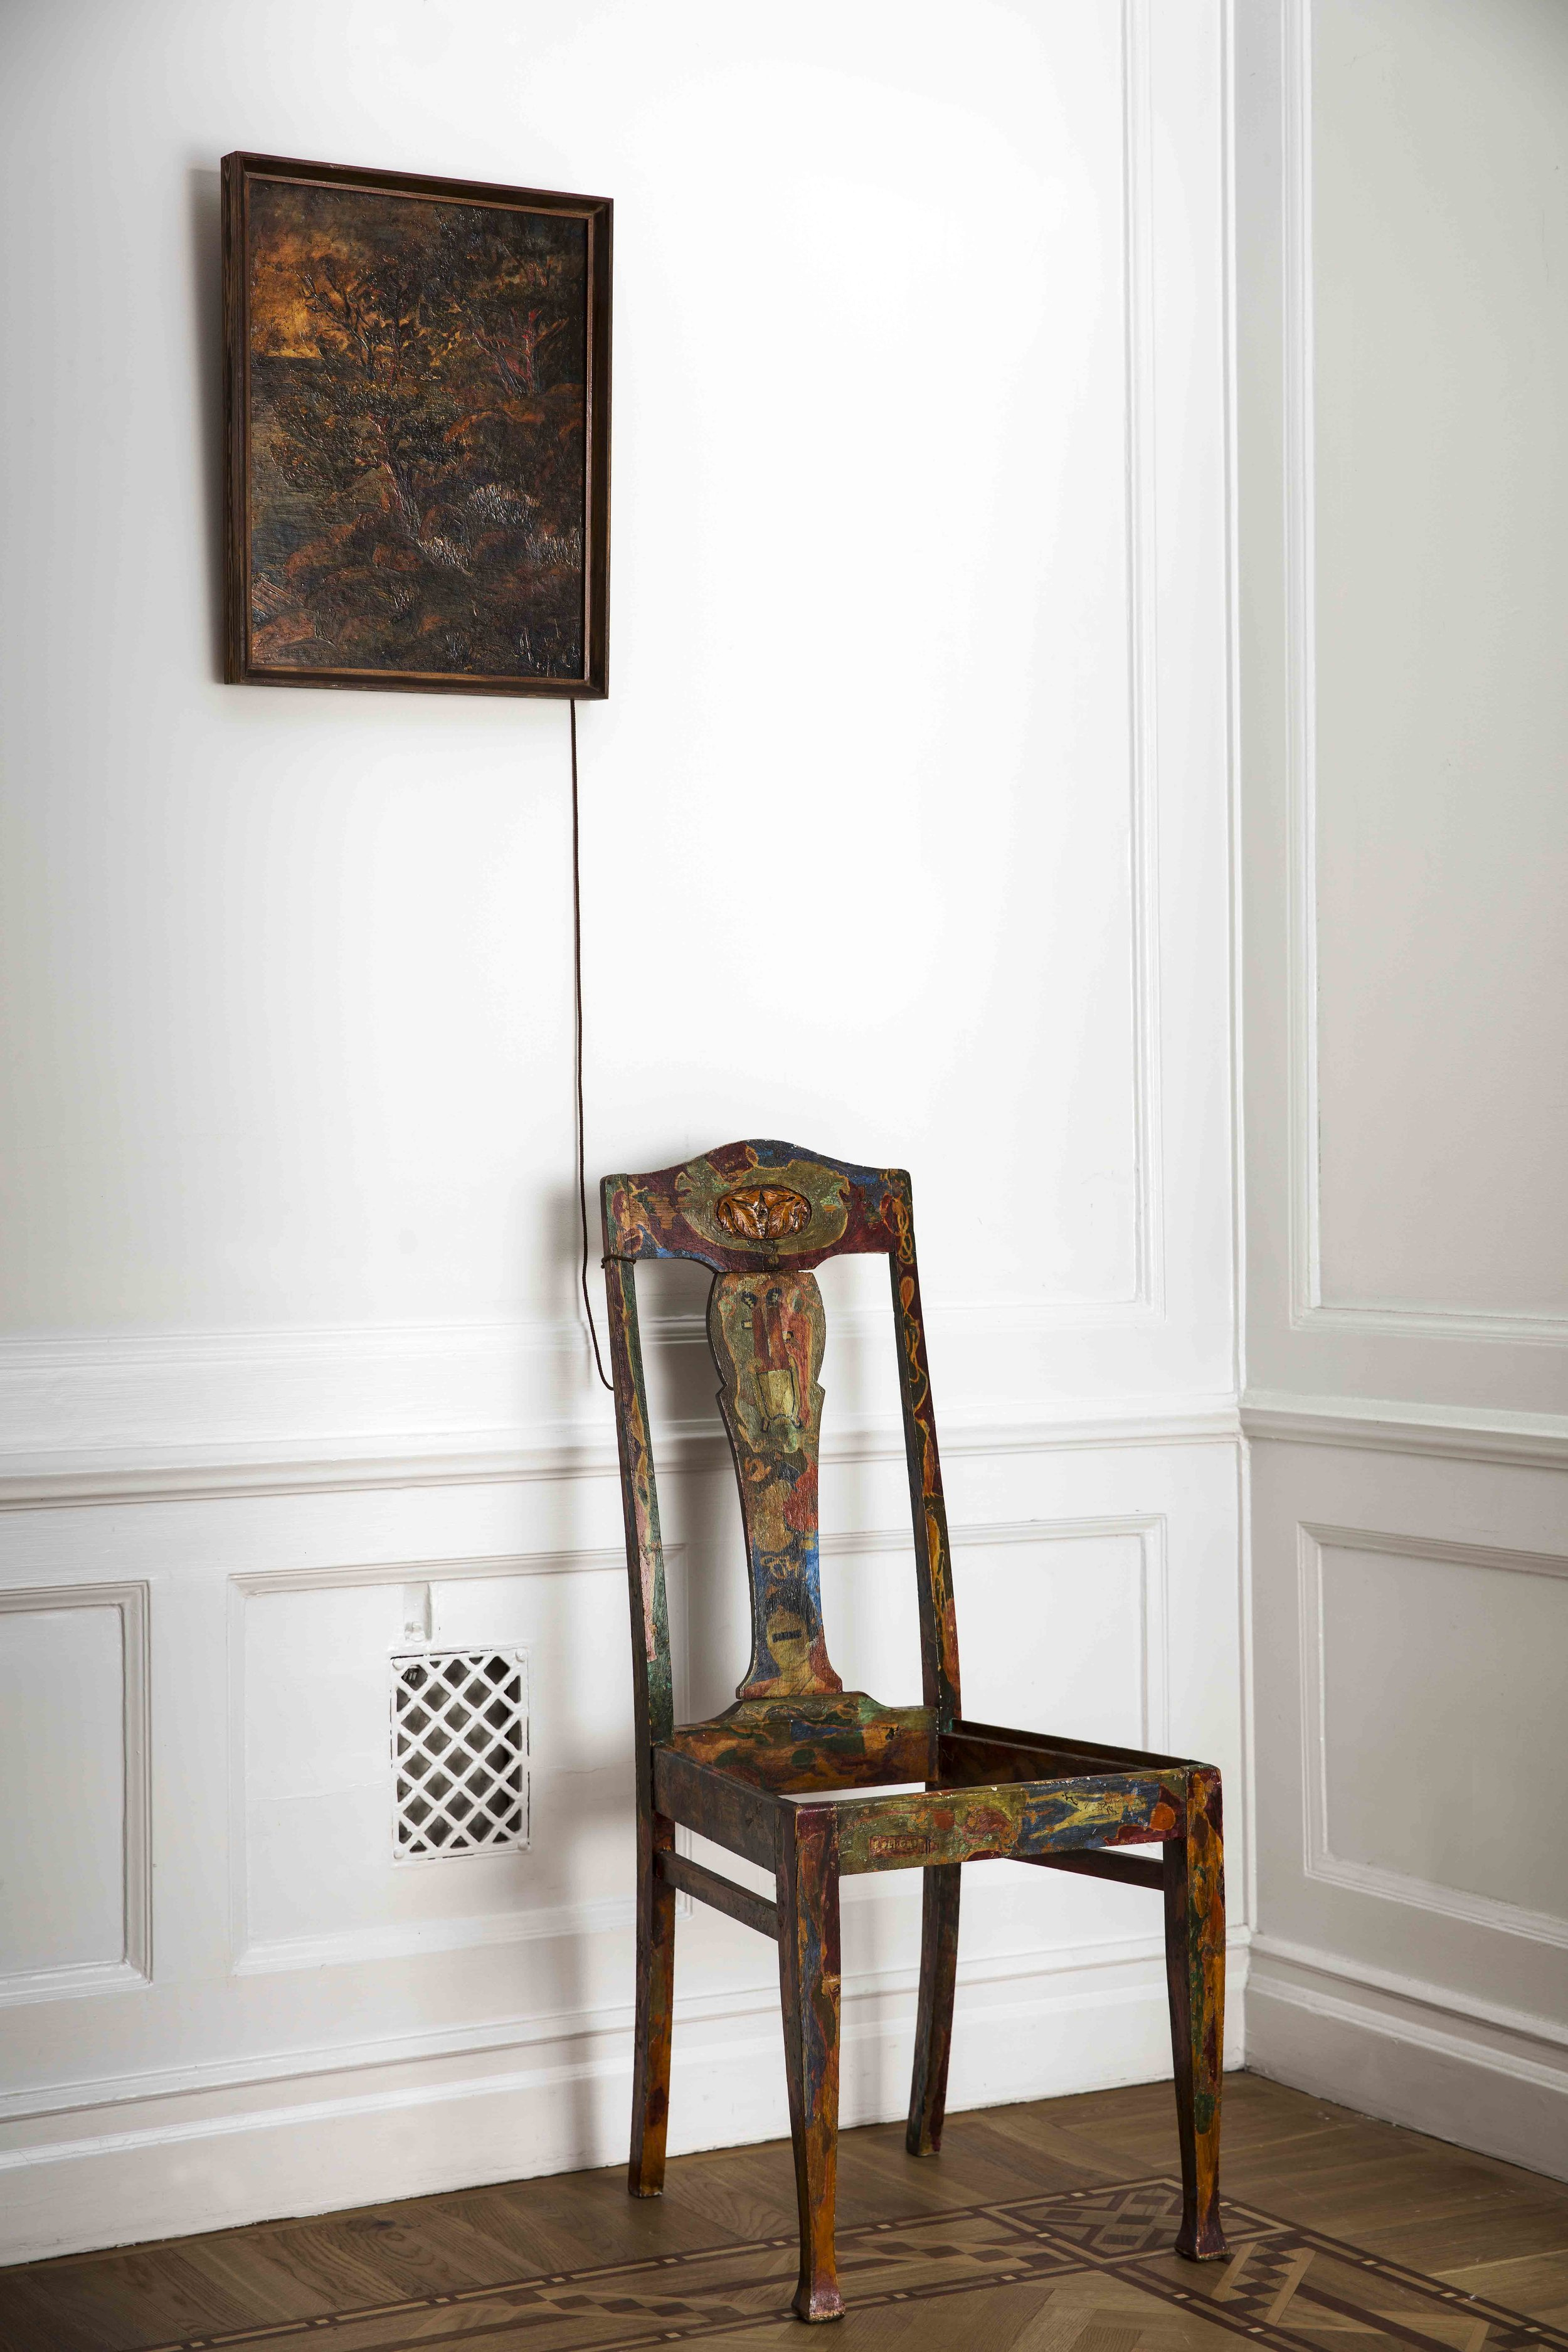 Dick Bengtsson  Stol II  1964 Installation with painting and chair 105 x 43 x 35 cm Painting 50 x 40 cm